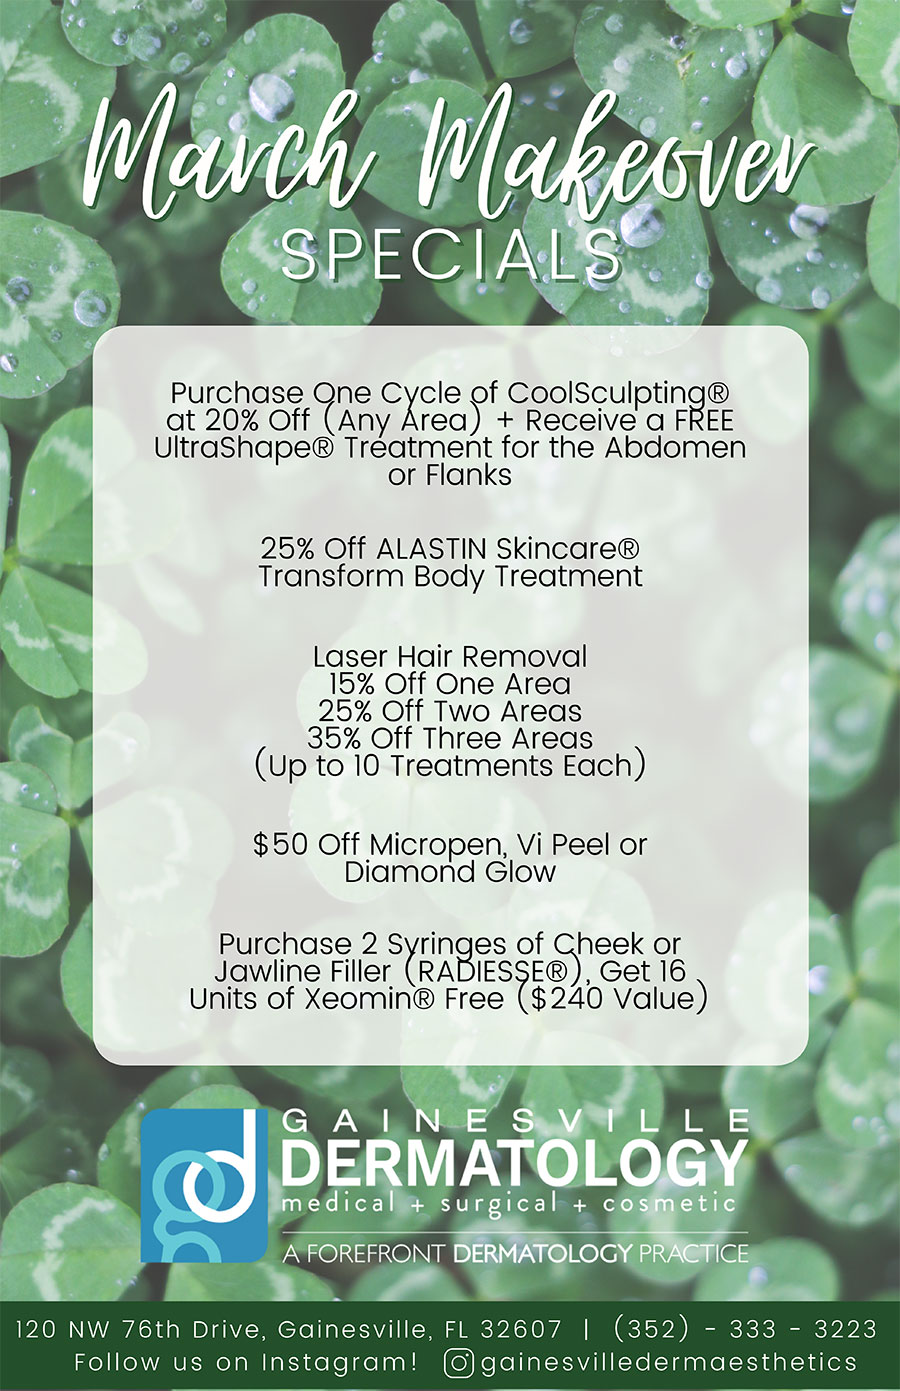 Dermatology Specials for March 2021 in Gainesville